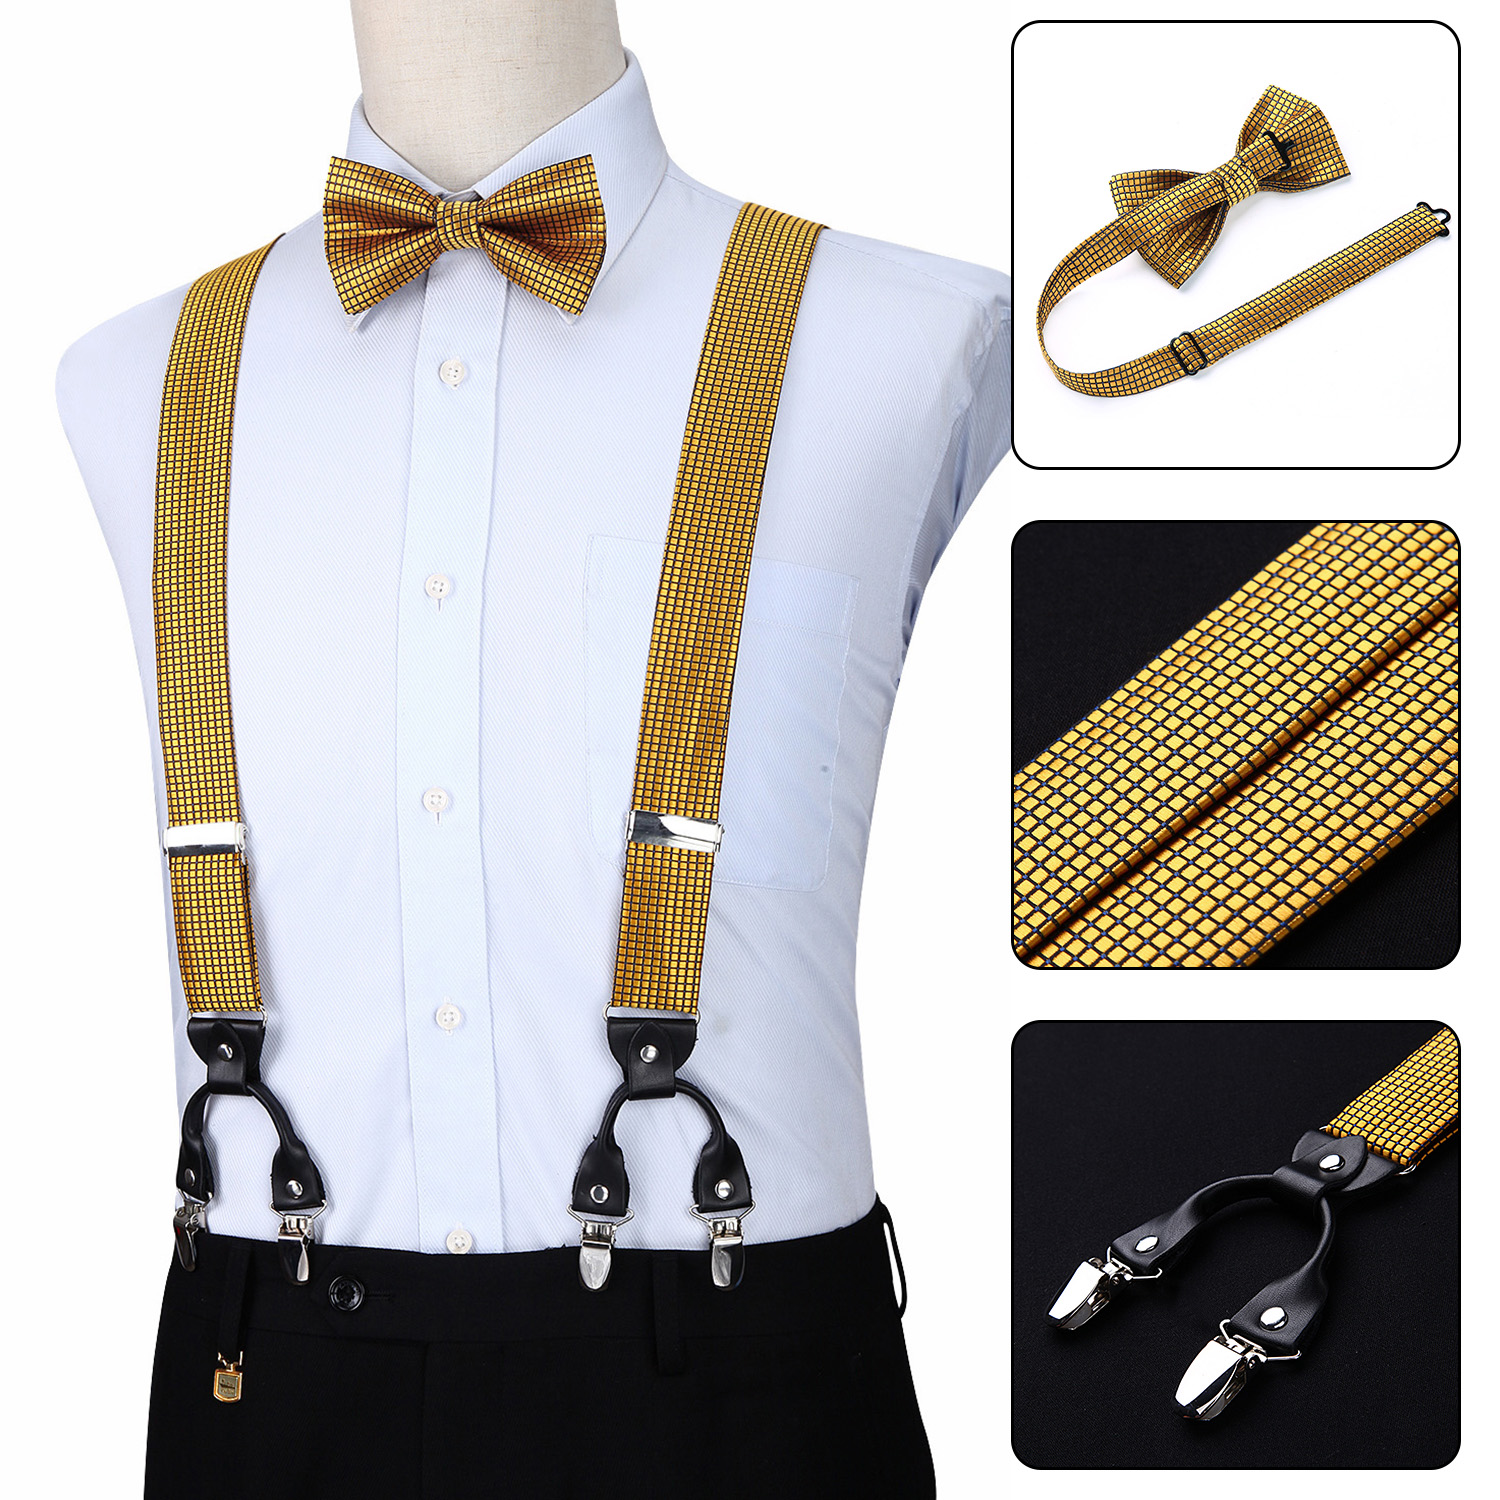 Men Suspenders Party Wedding Checks Sold Fashion Various 6 Clips Pre-Tied Bowtie Pocket Square Set Adjustable Braces S05